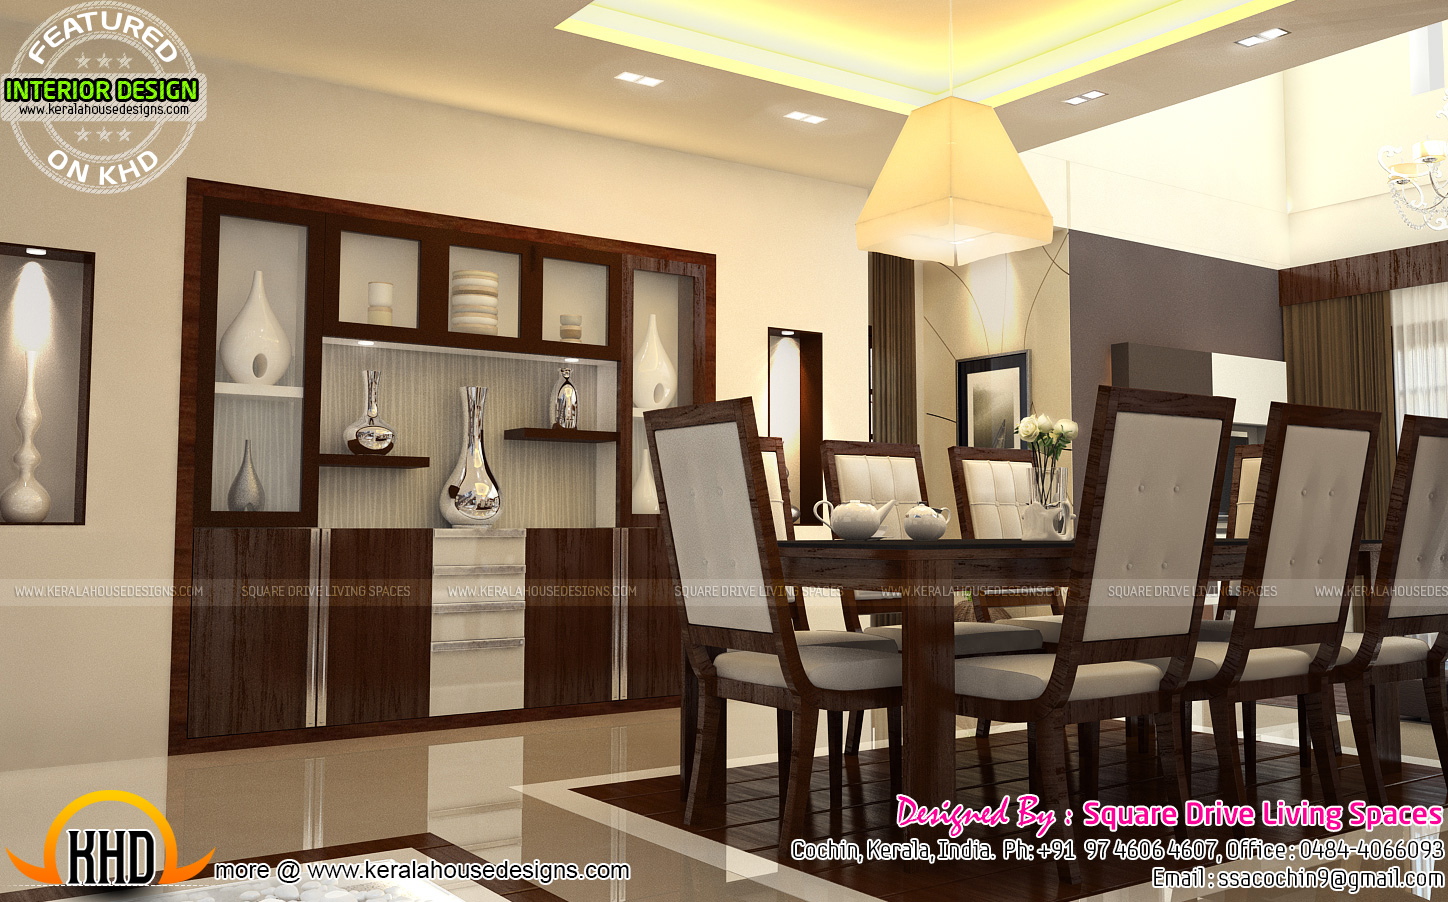 Interior designs of master bedroom living kitchen and for Kerala house interior arch design